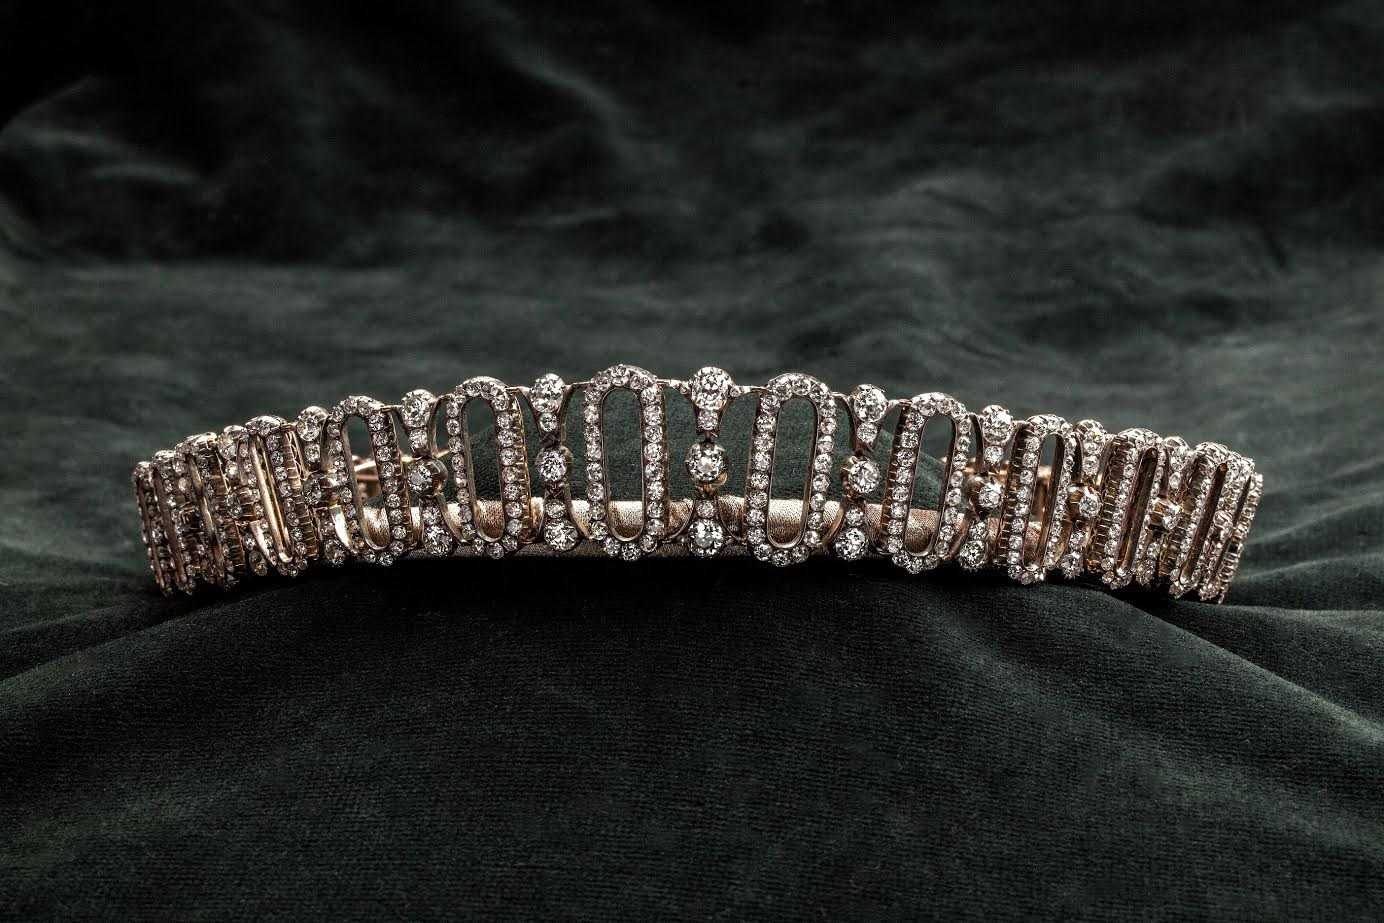 Edwardian tiara belonging to Princess Dianas family